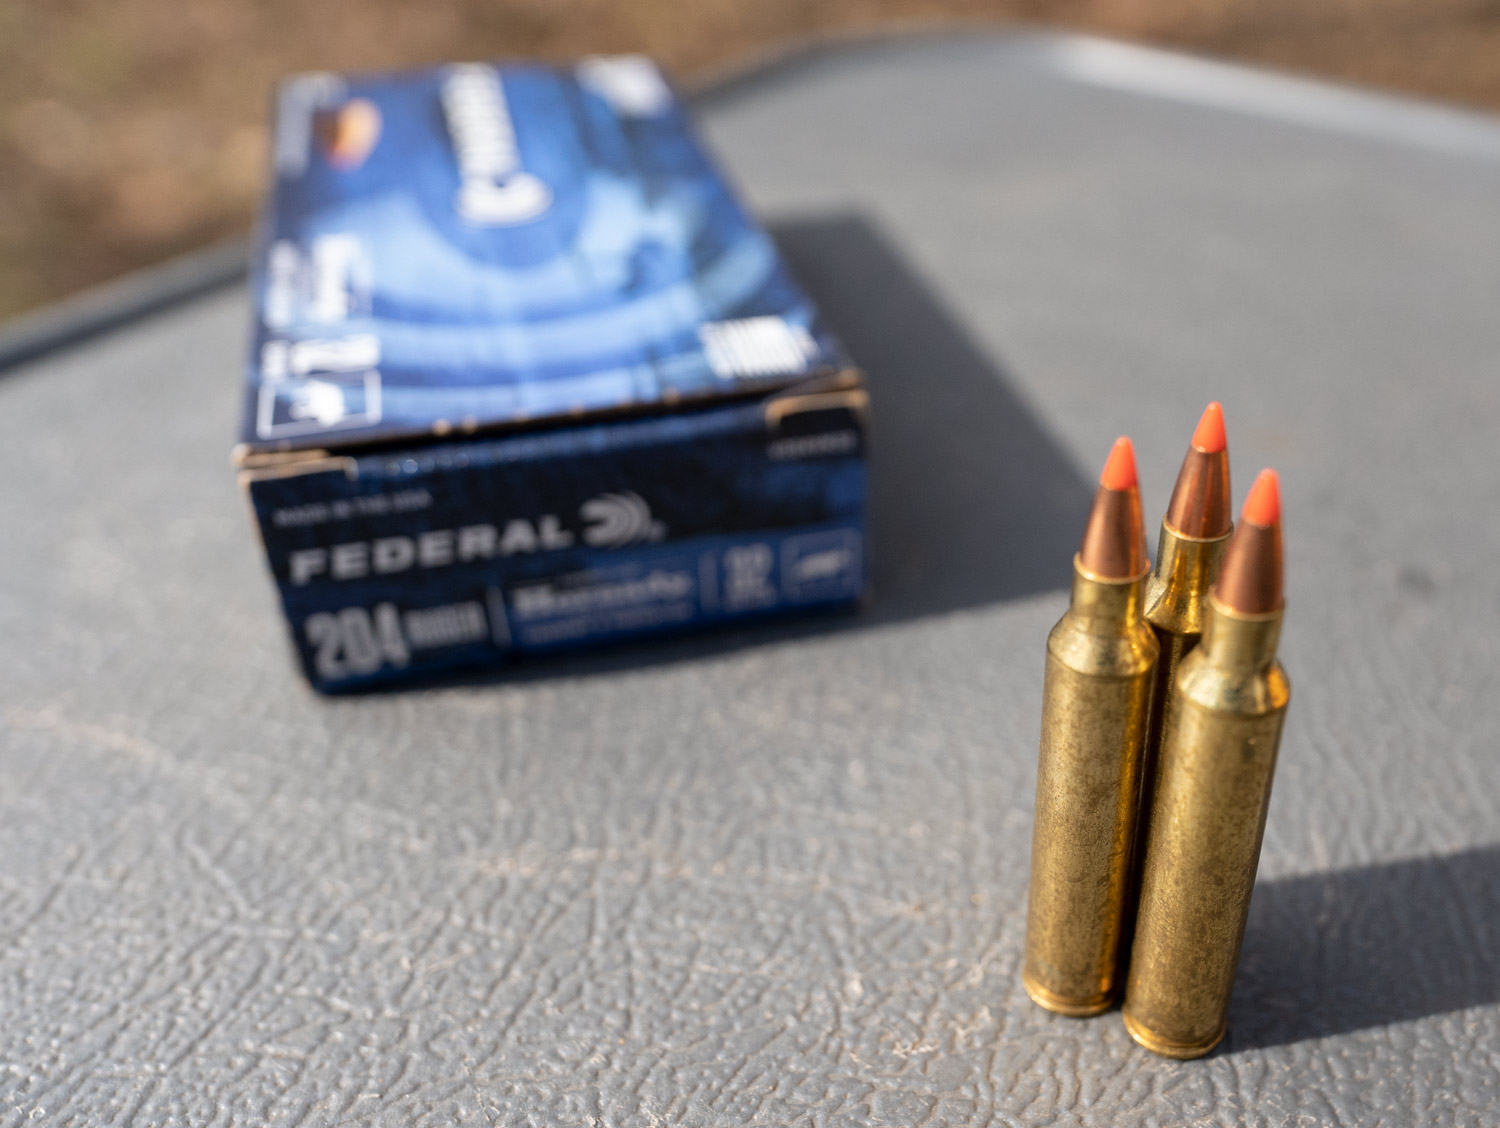 204 Ruger ammo with a polymer tip